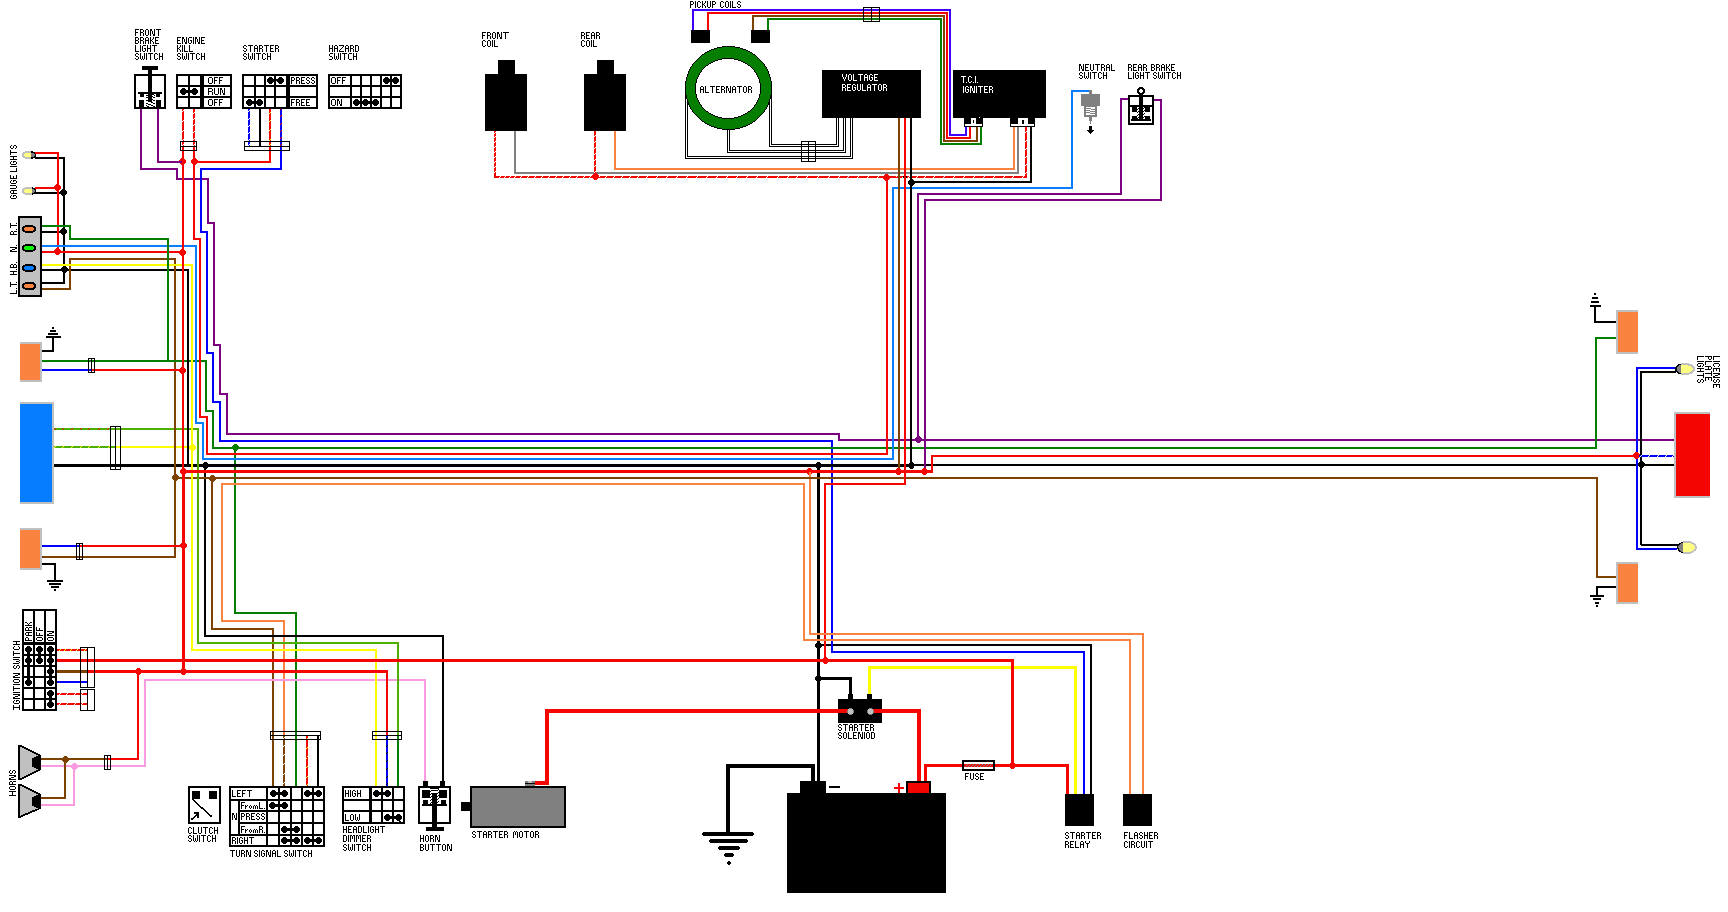 920vgo jpg here is a collection of wiring diagrams i have accumulated threw the years these are virago specific but they can be easily adapted to your needs